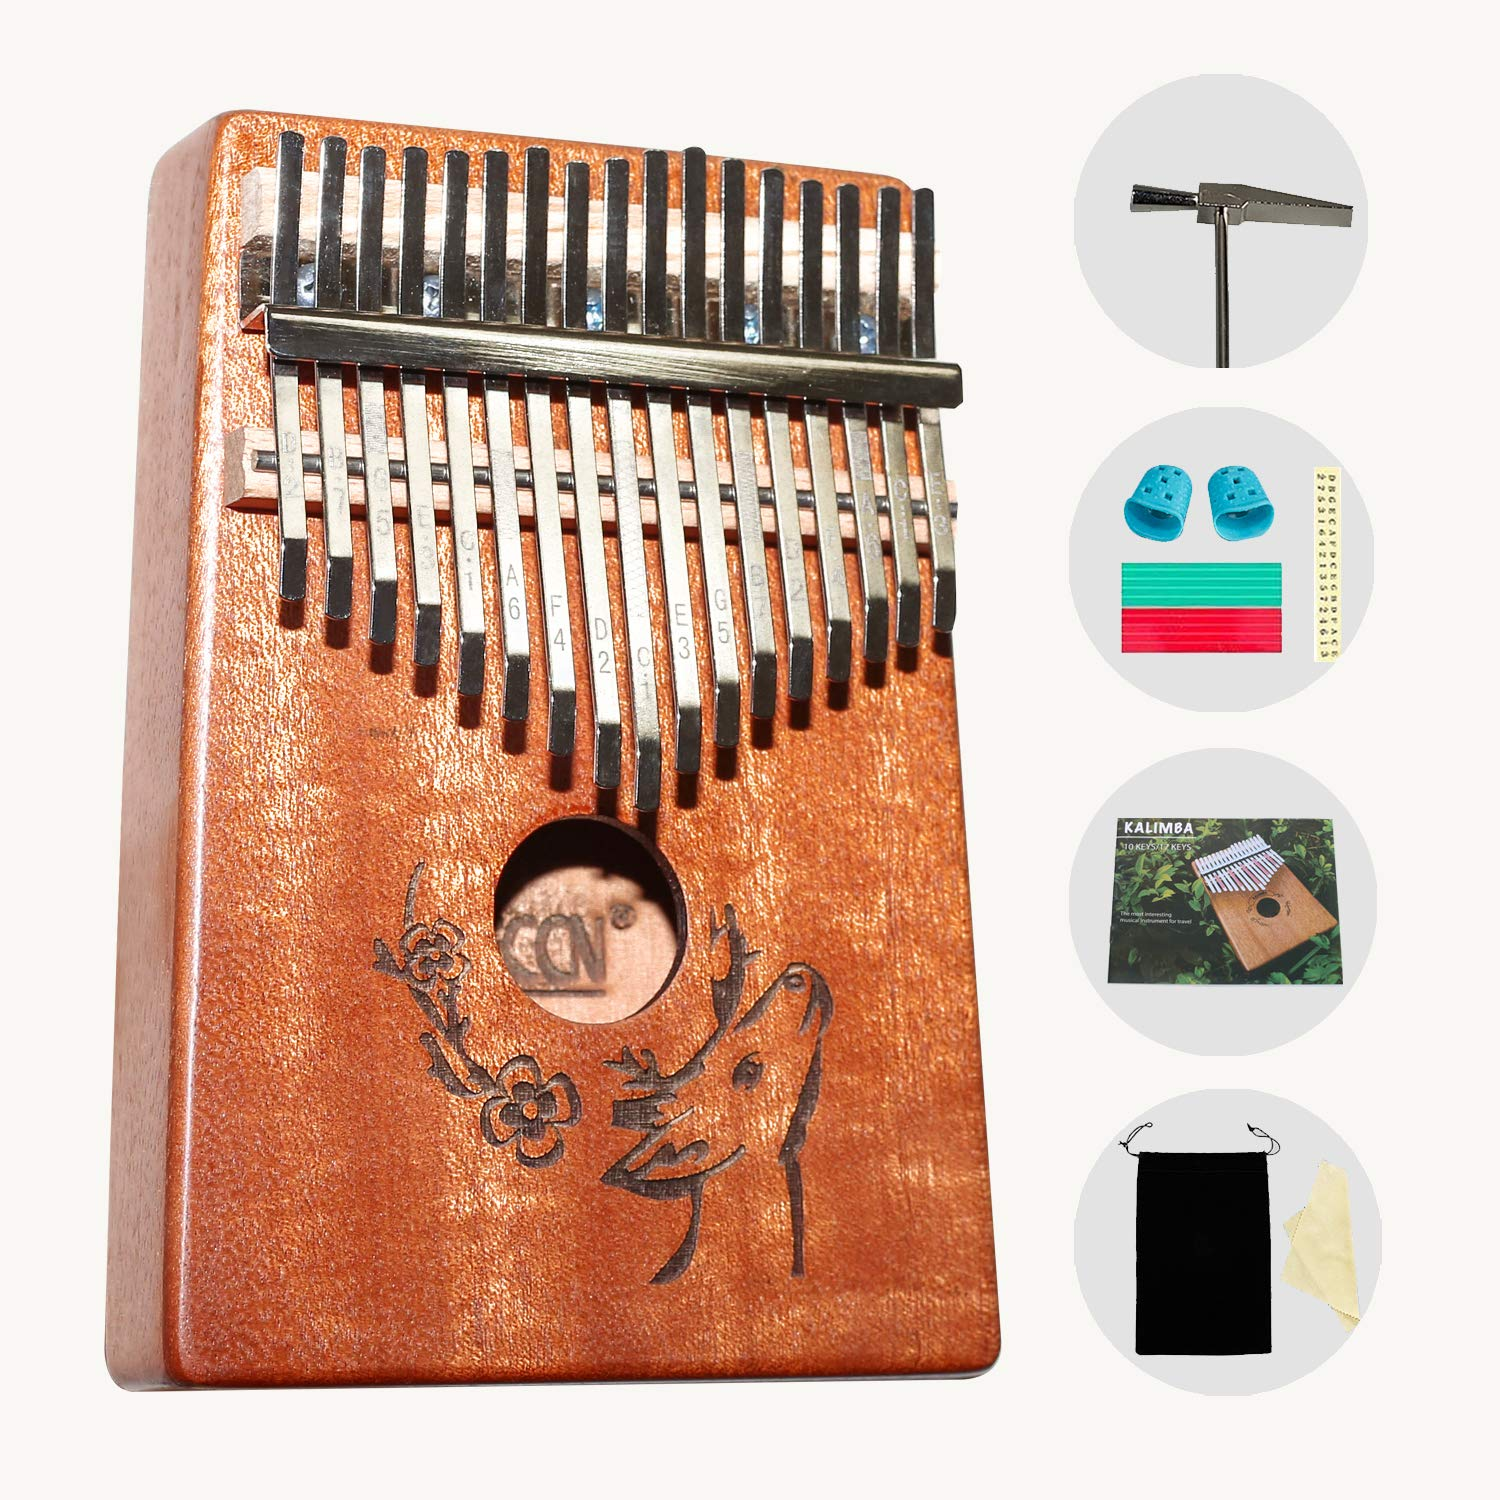 AECCN Kalimba 17 Keys Thumb Piano - Pocket Size With Study Instruction and Tune-Hammer & Simple Sheet Music, Christmas Day Birthday Gifts Idea for Kids Adults Beginners, Professionals (Deer)